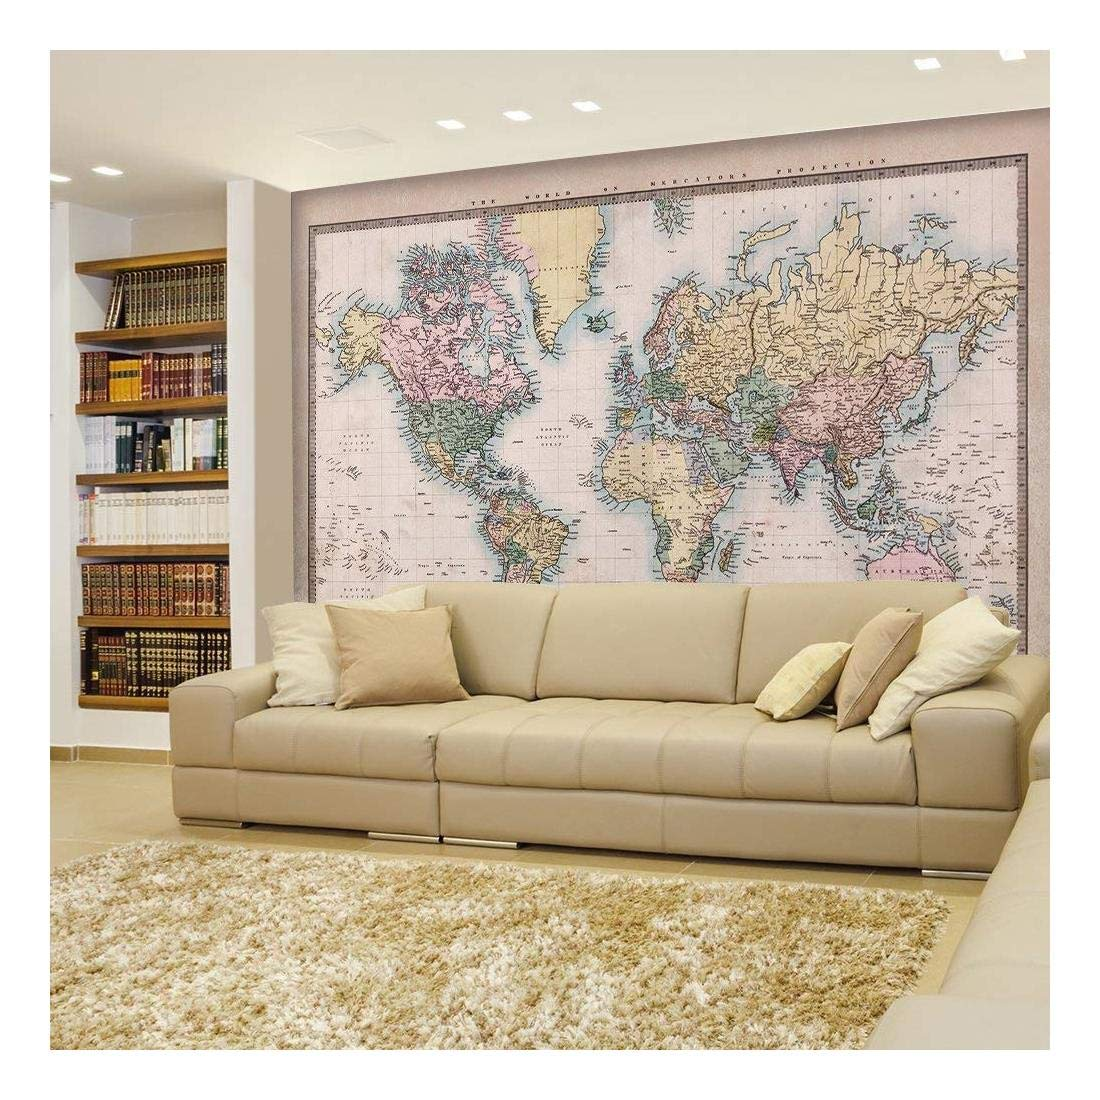 wall26 - Antique Full Color Mercator Projection Political Map of The World Illustration - Wall Mural, Removable Sticker, Home Decor - 100x144 inches